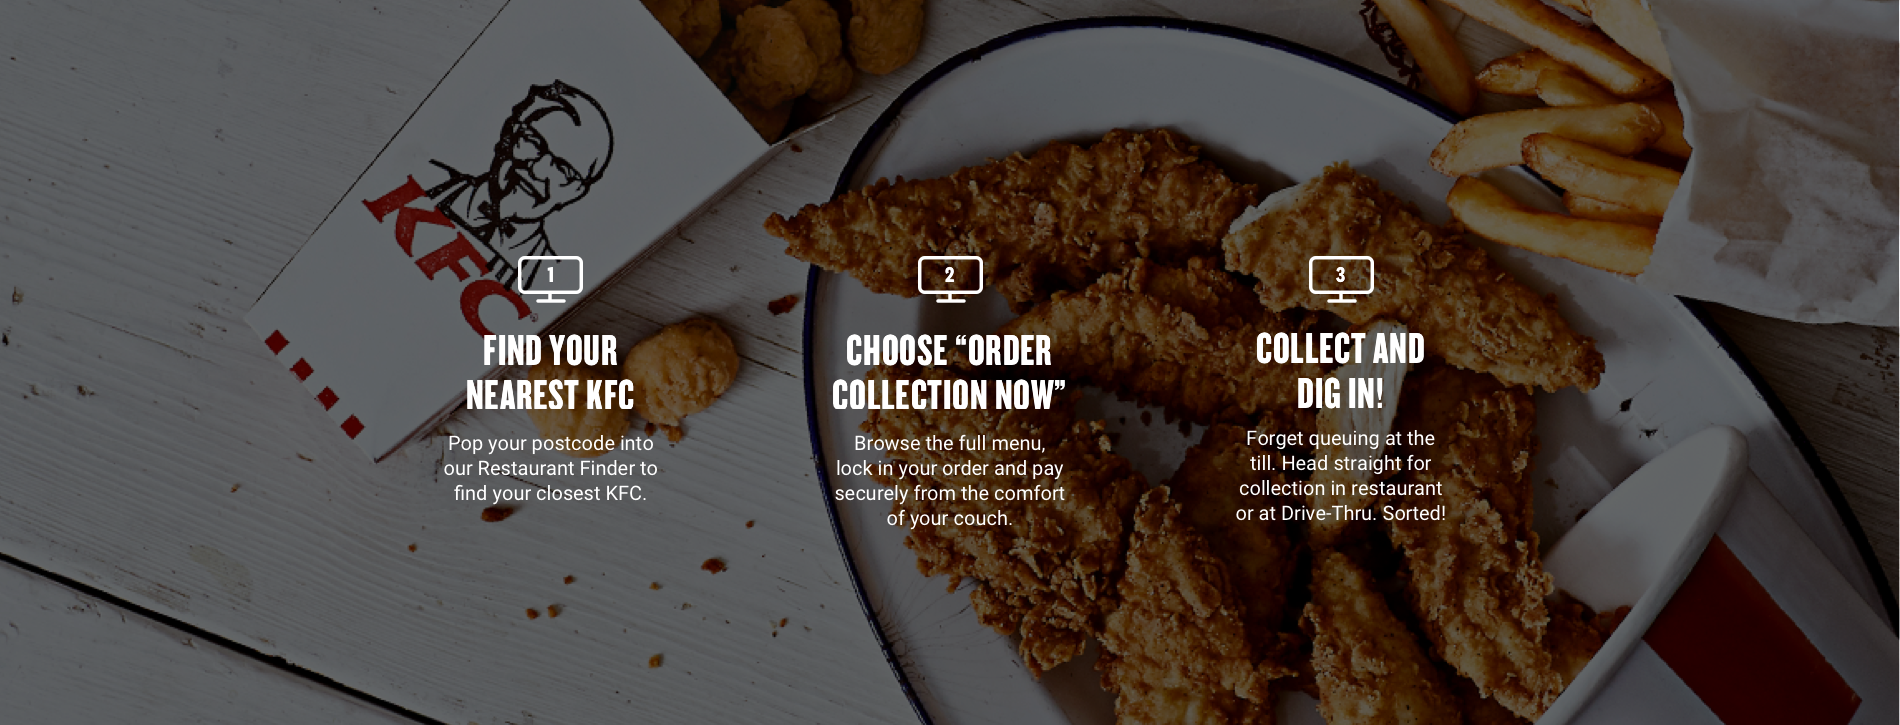 Find your nearest KFC, choose order collection now, collect and dig in